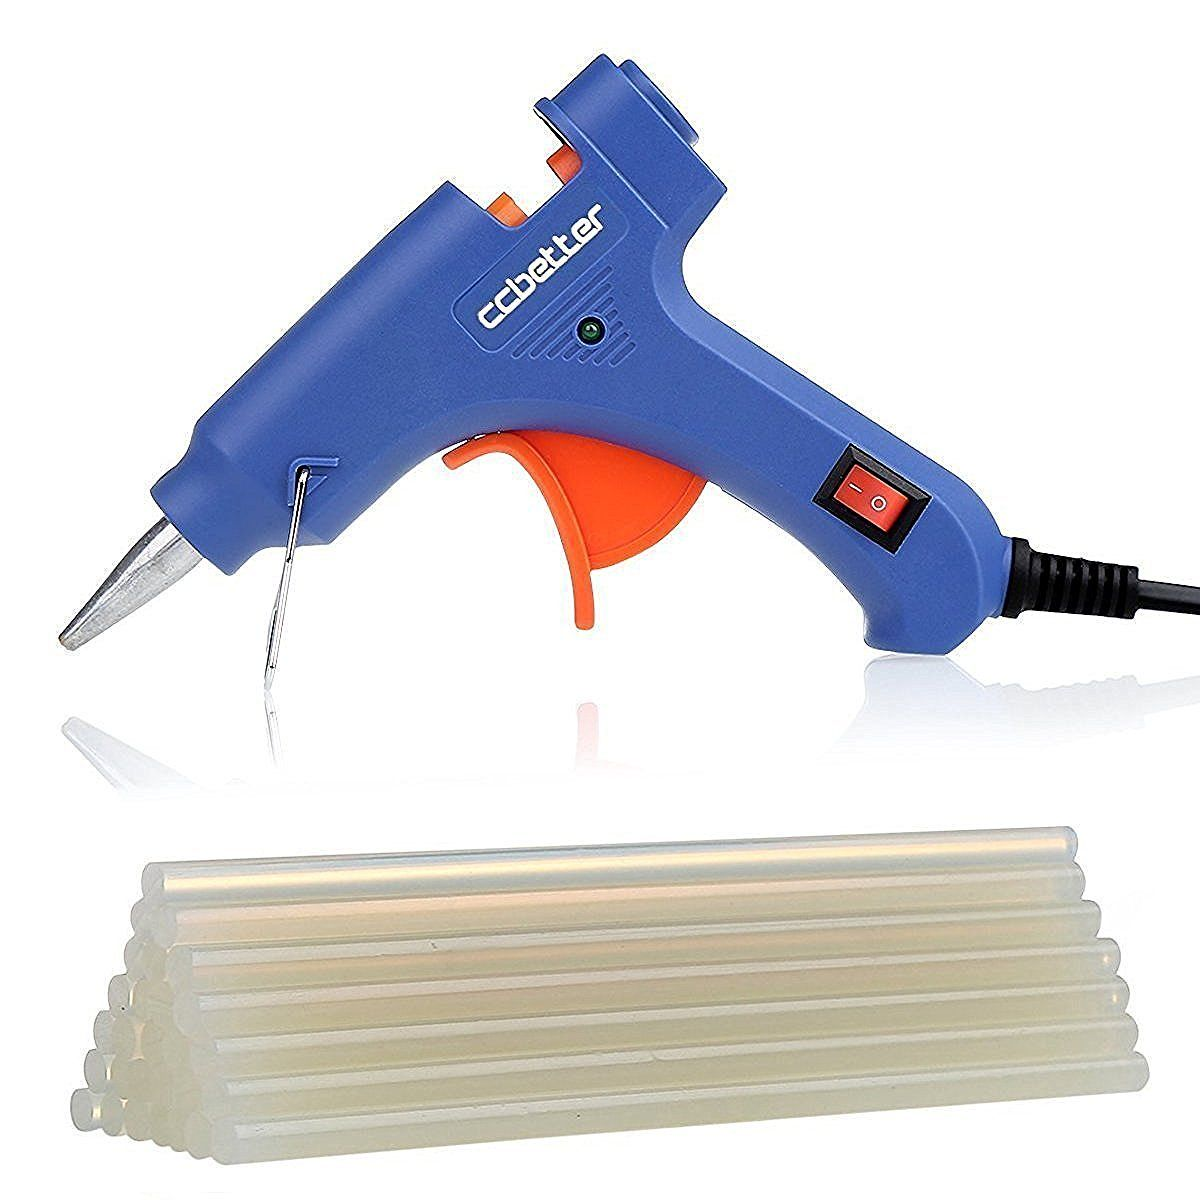 Best hot glue gun for crafts